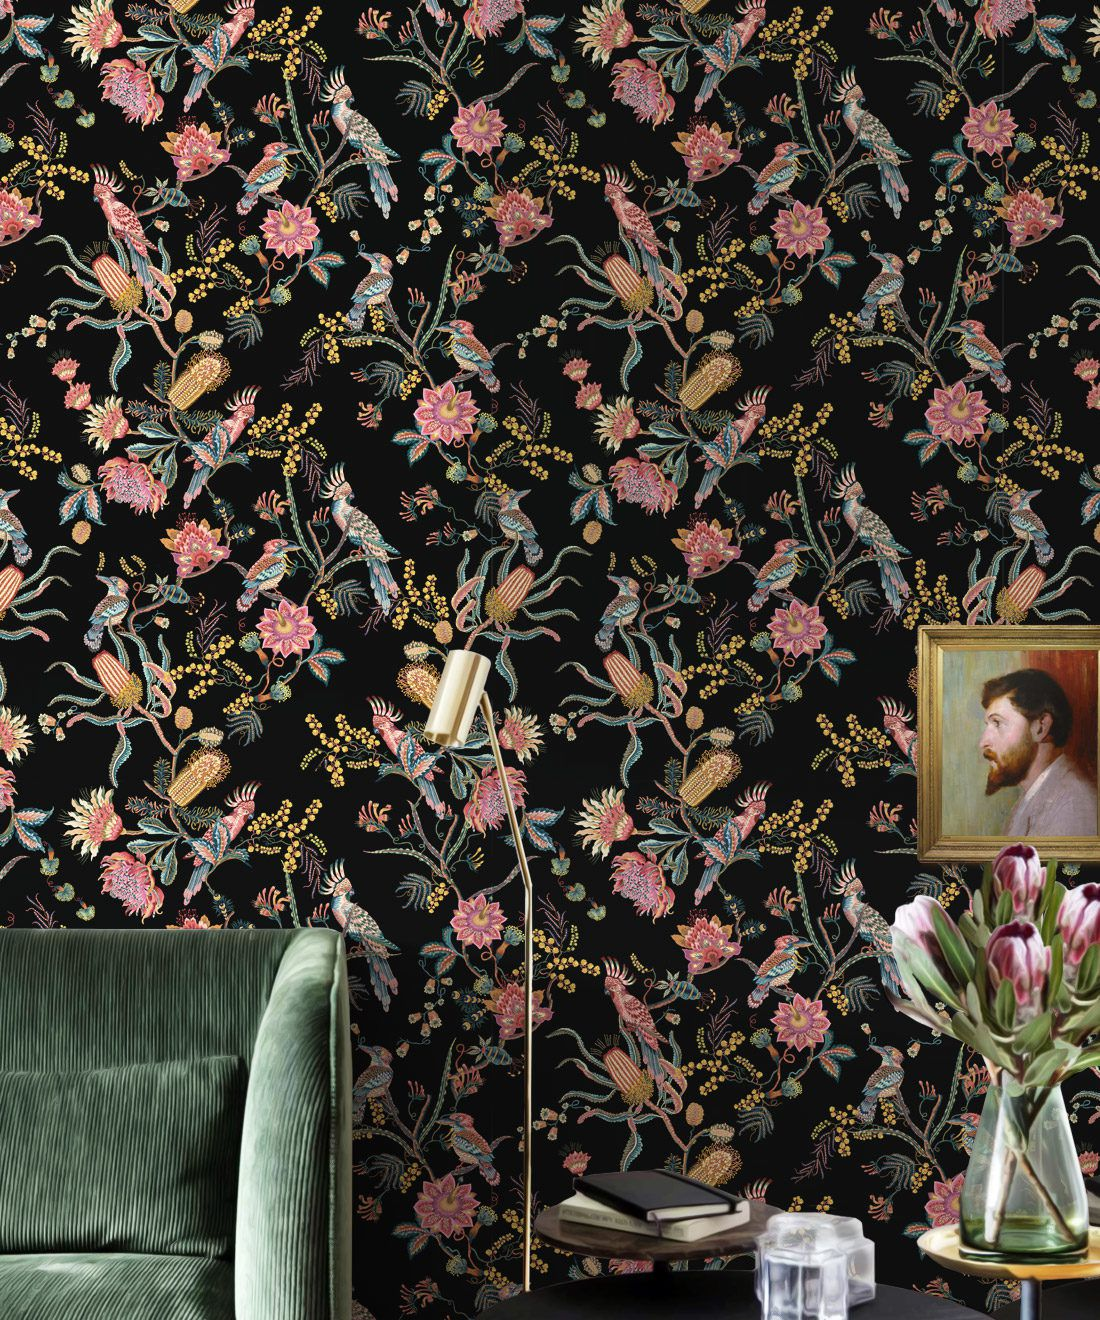 Matilda Wallpaper • Cockatoo, kookaburra • Australian Wallpaper • Milton & King USA • Night Insitu